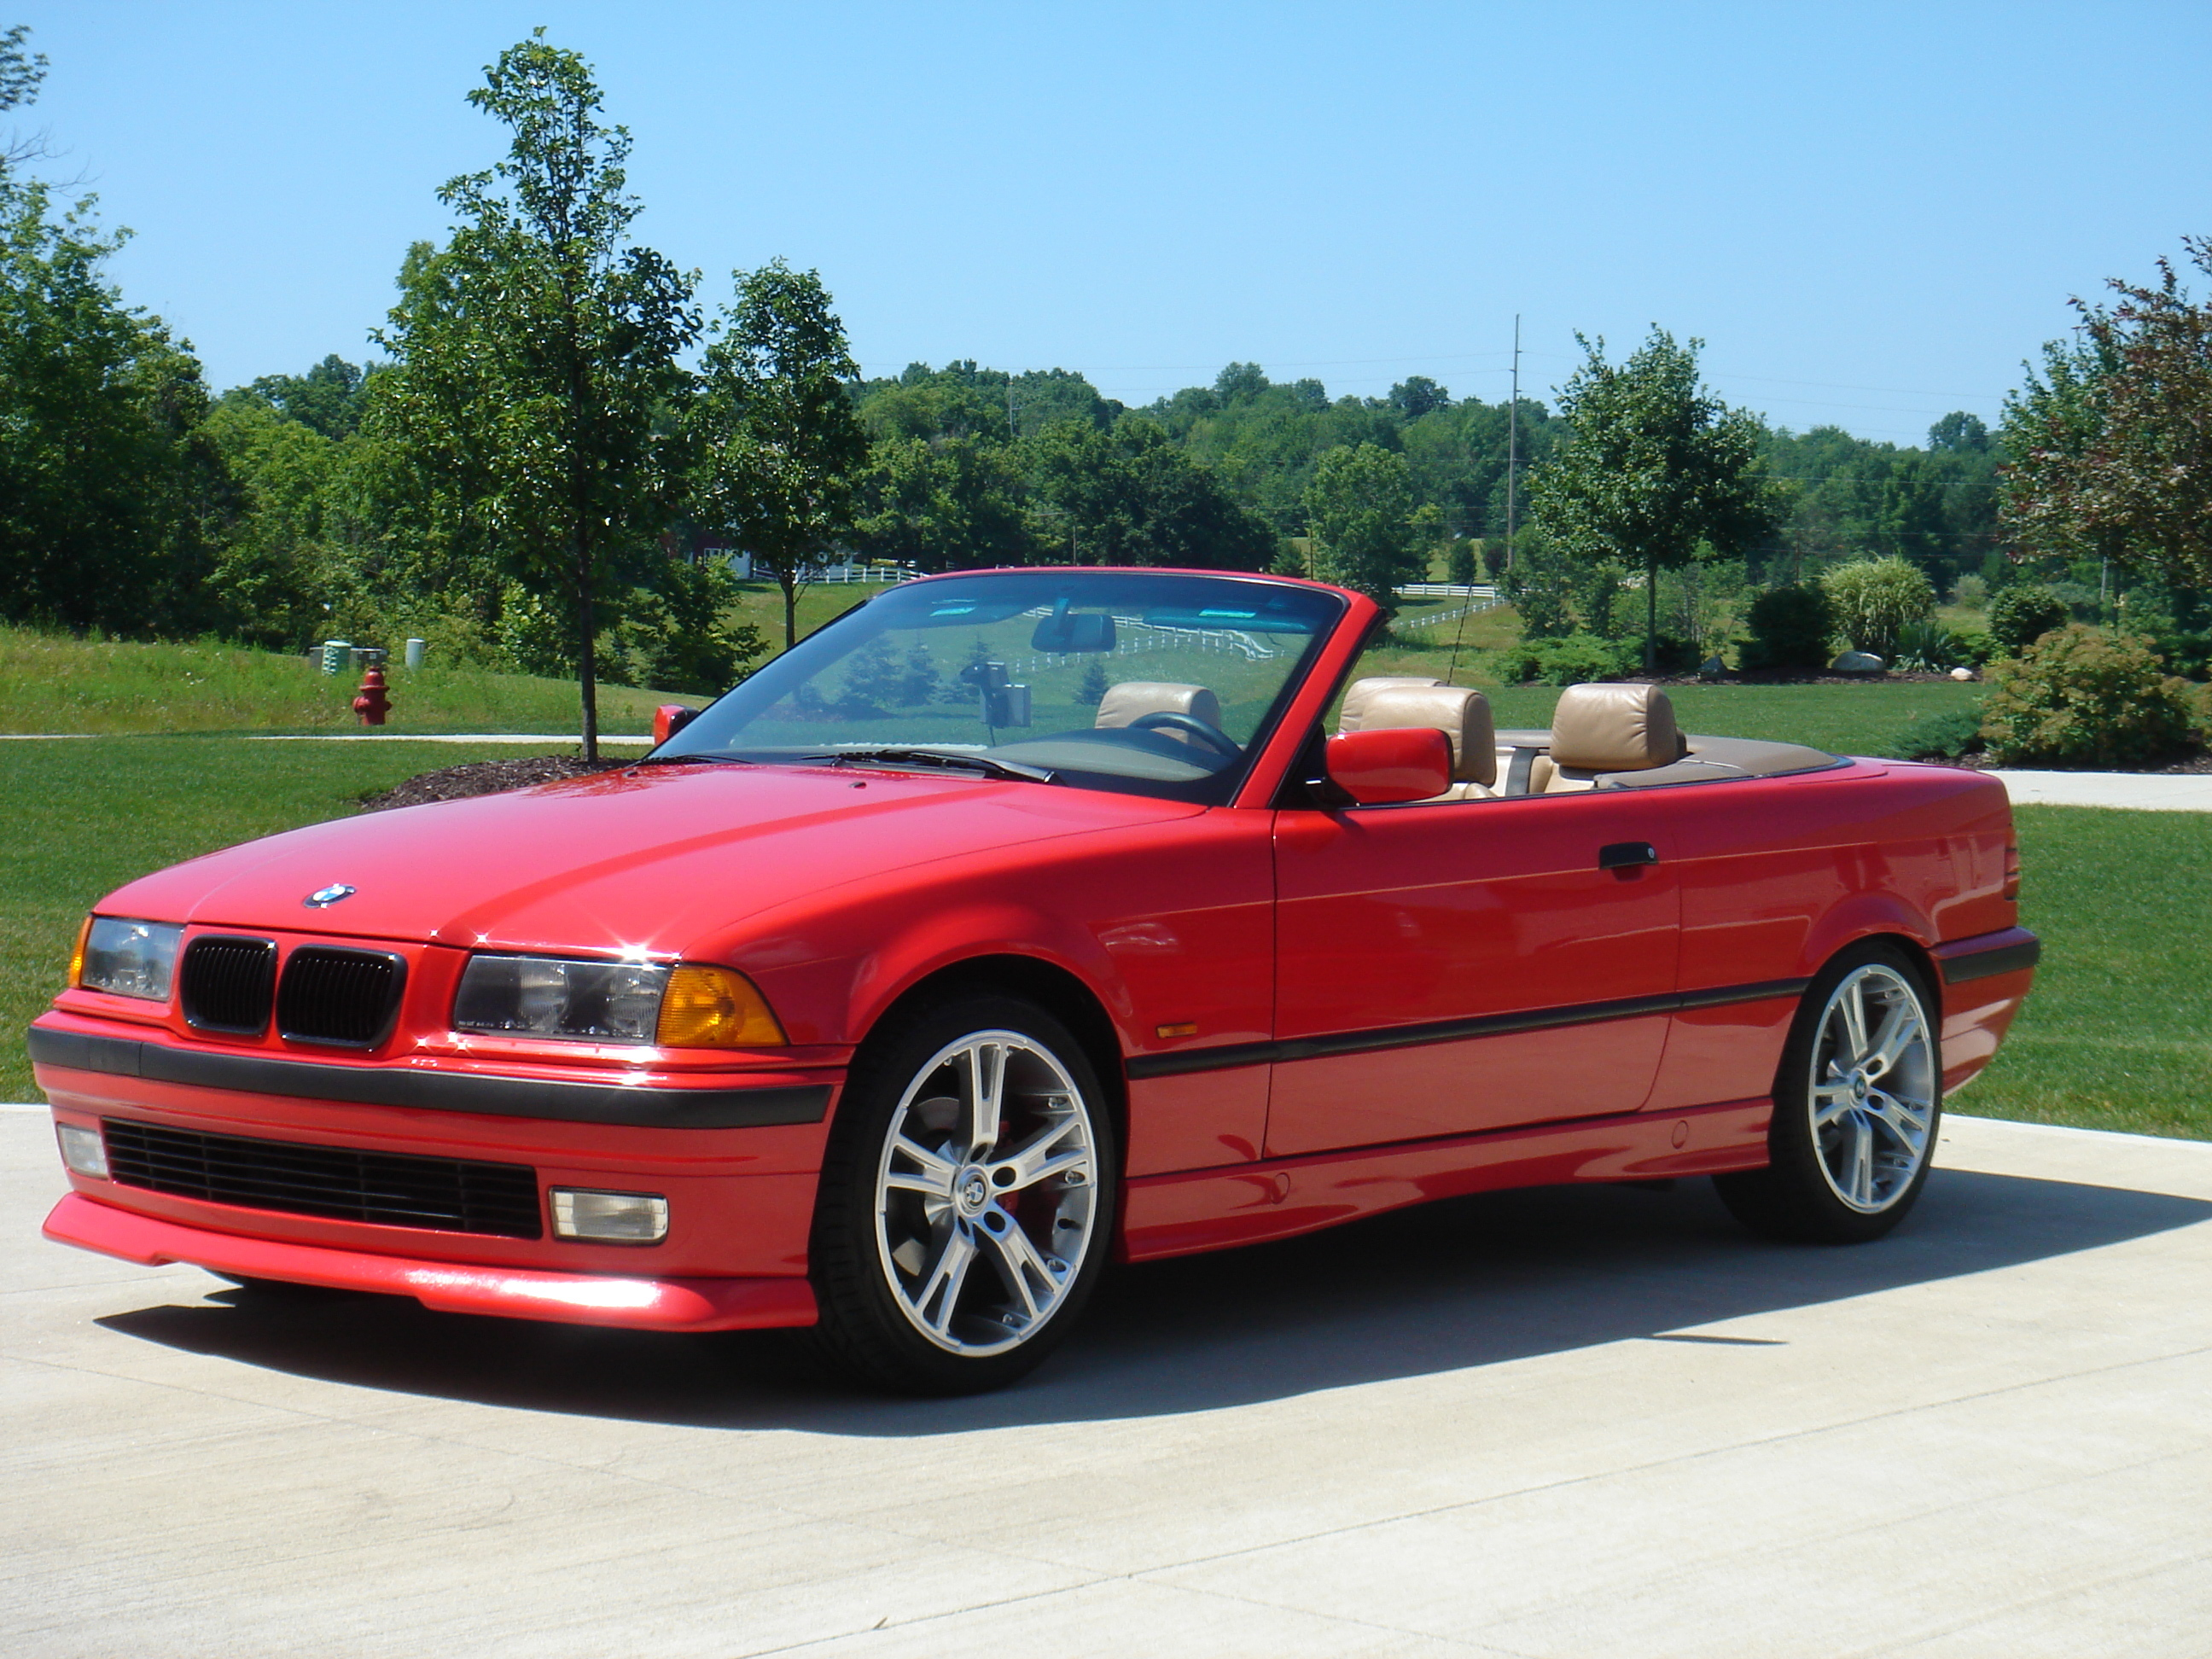 StalkerVette's 1999 BMW 3 Series